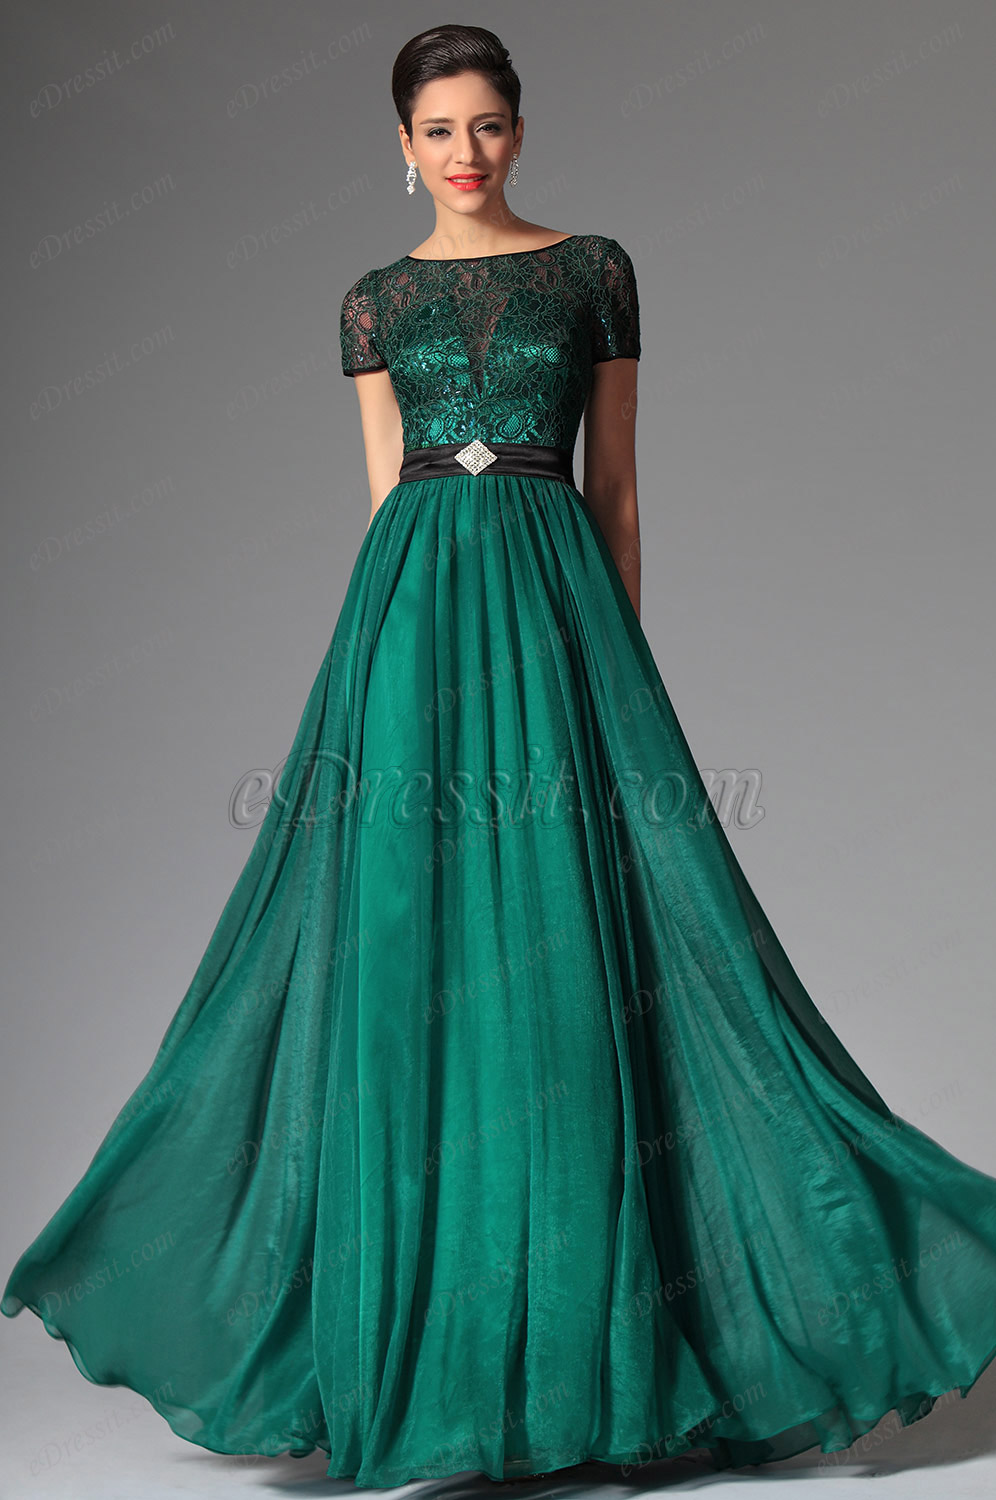 eDressit 2014 New Dark Green Short Sleeves Evening Dress Prom Dress